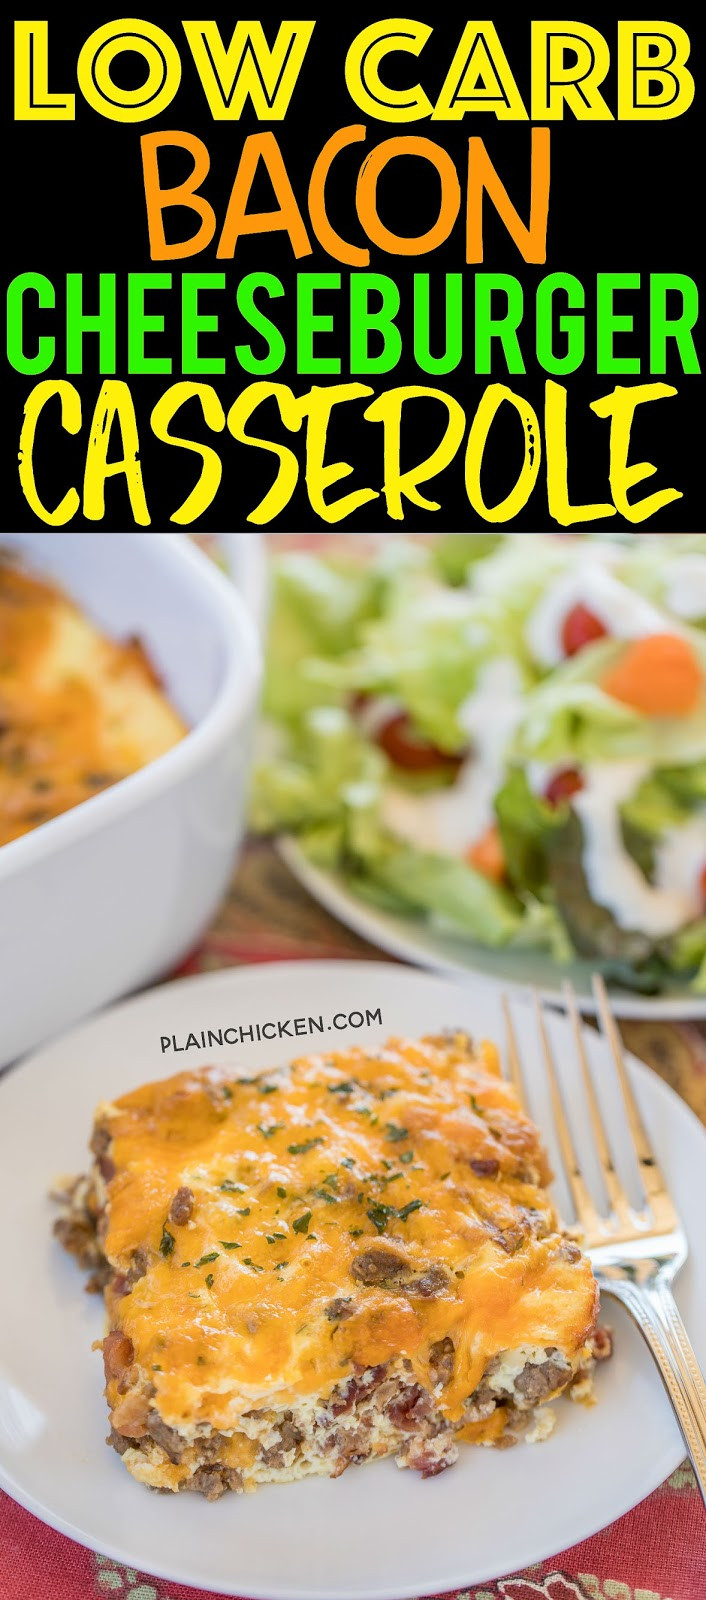 Low Carb Ground Beef Recipes Cream Cheese  Low Carb Bacon Cheeseburger Casserole